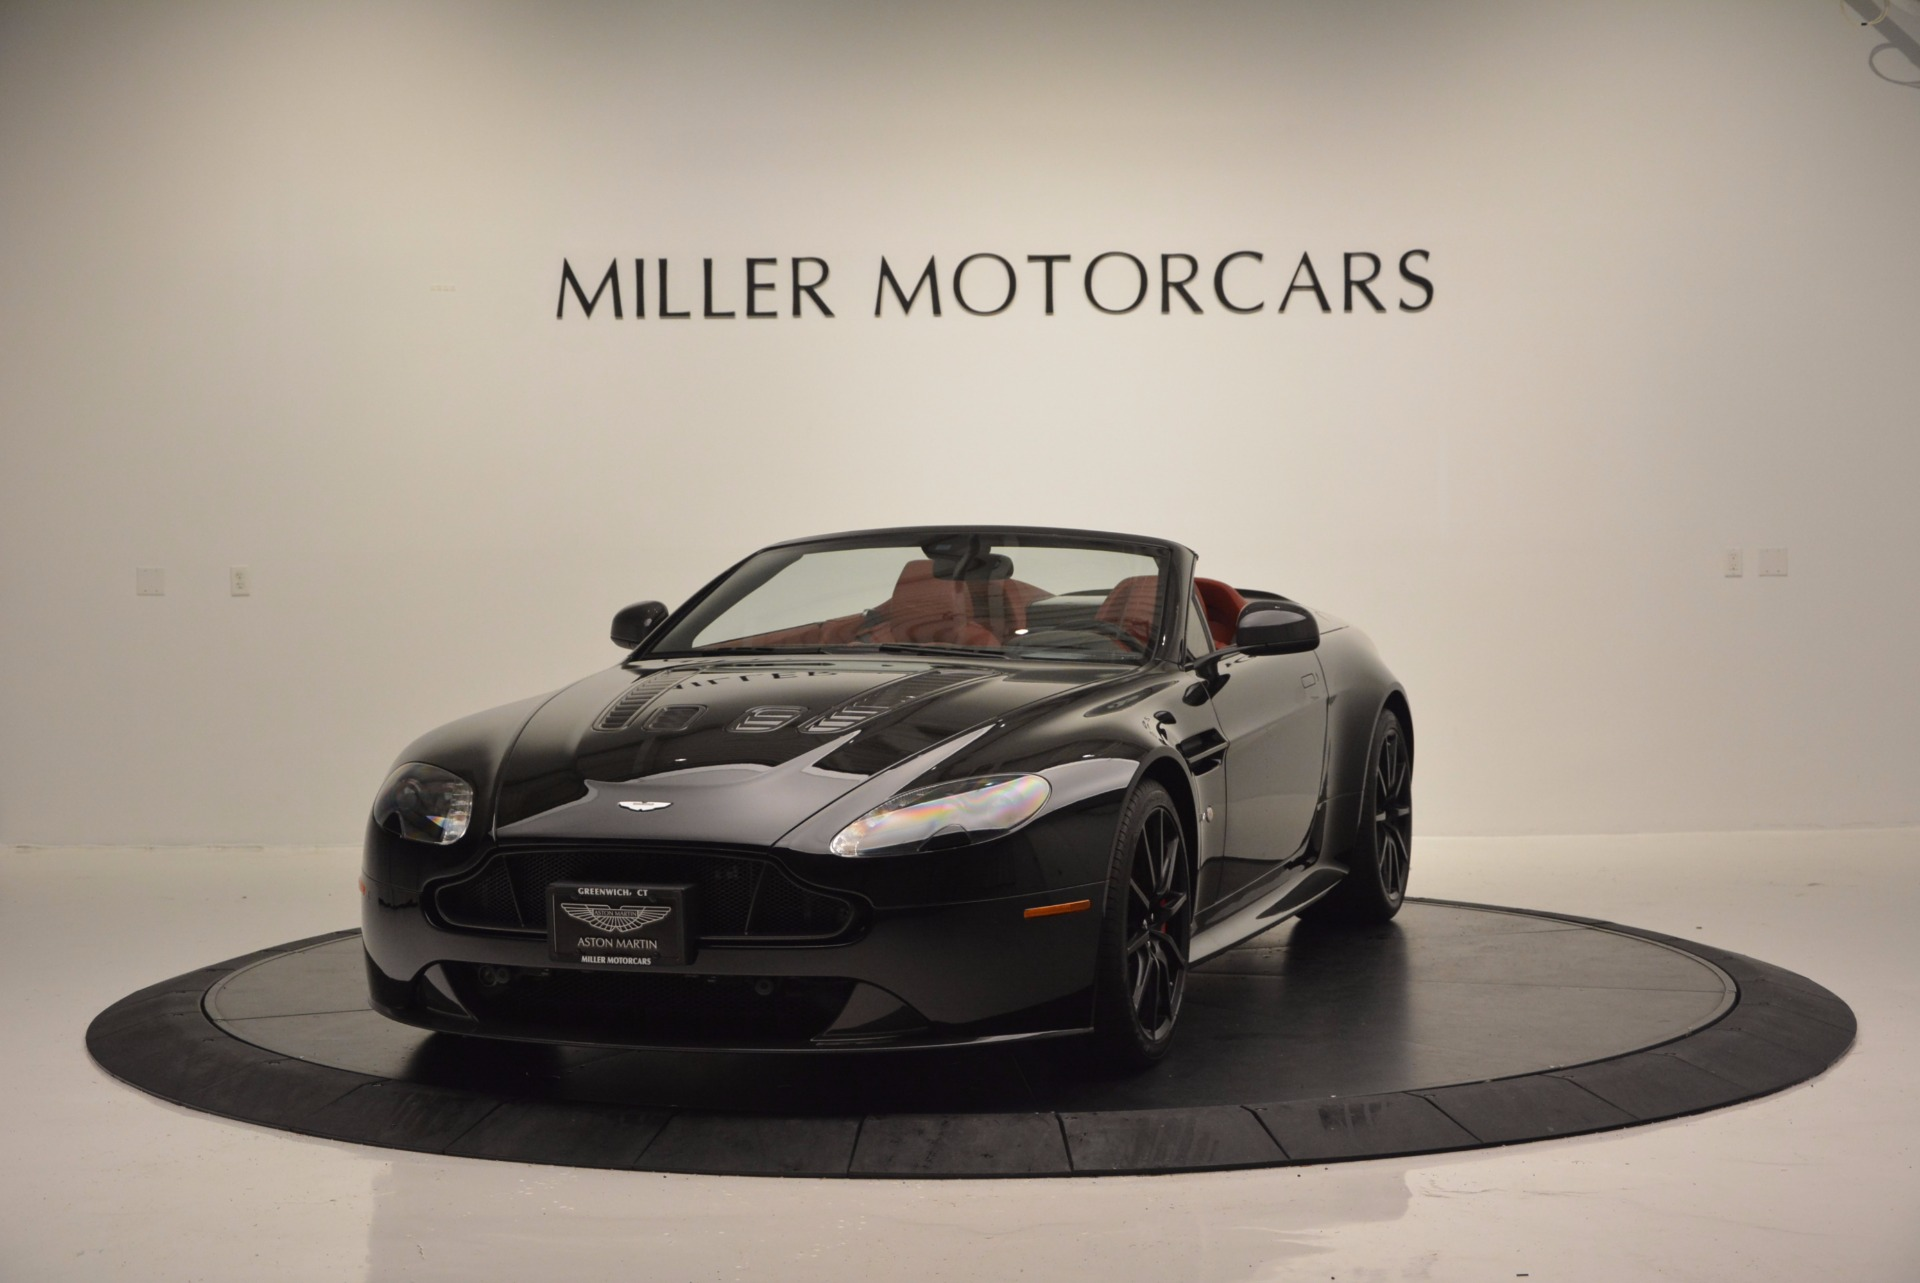 Used 2015 Aston Martin V12 Vantage S Roadster for sale Sold at Maserati of Westport in Westport CT 06880 1